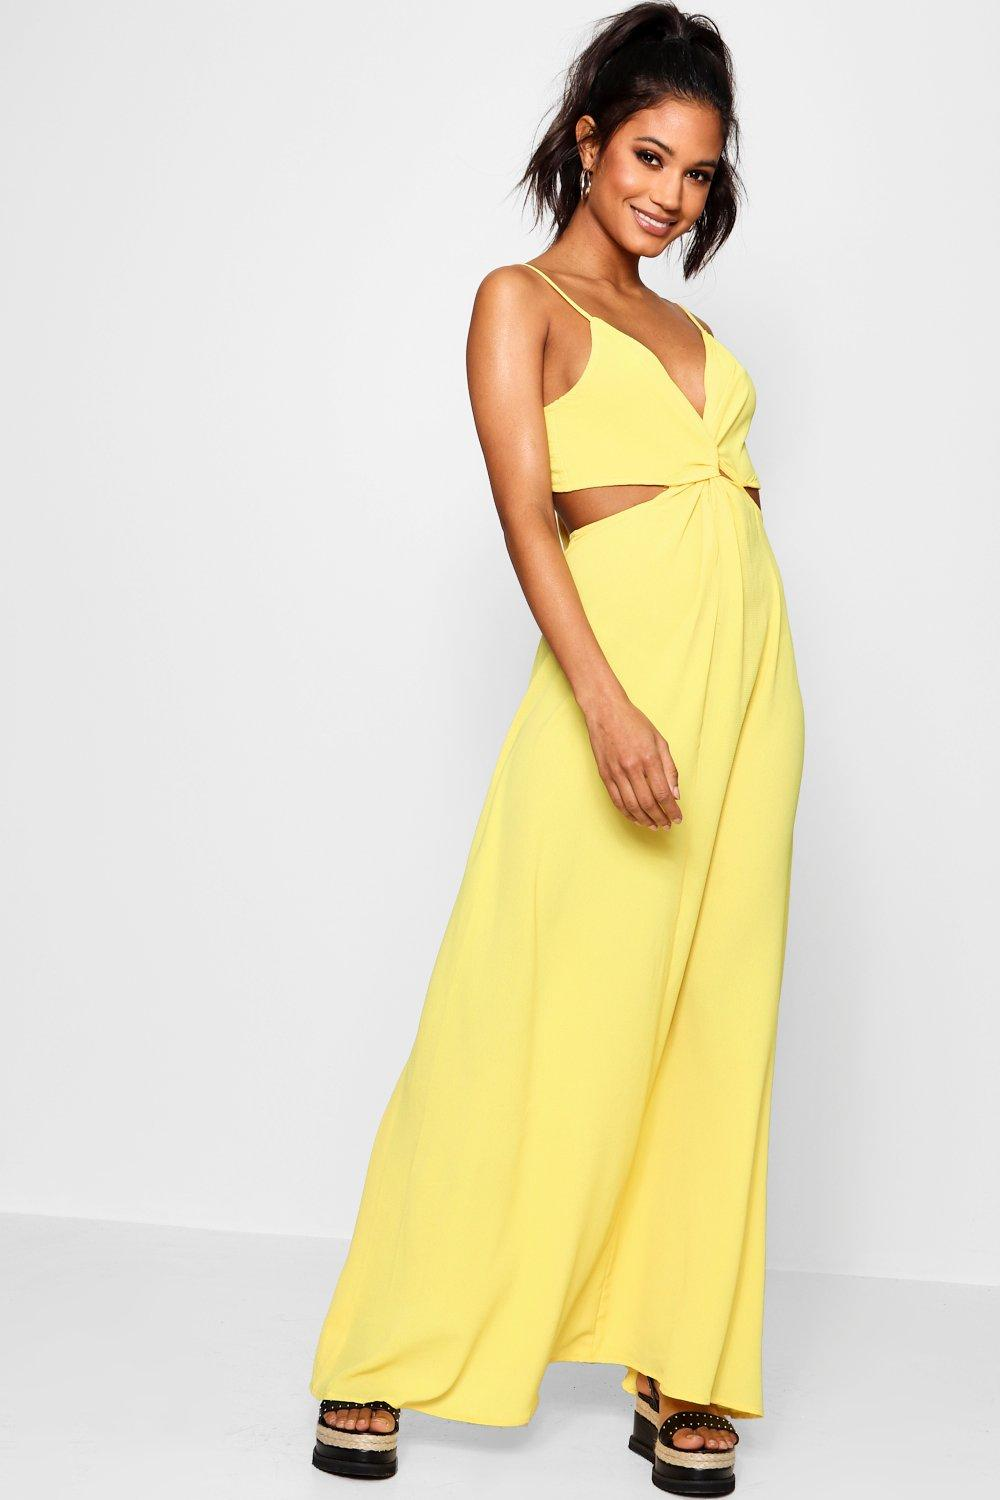 e91b90f99c5a Womens Yellow Knot Front Tie Back Maxi Dress. Hover to zoom